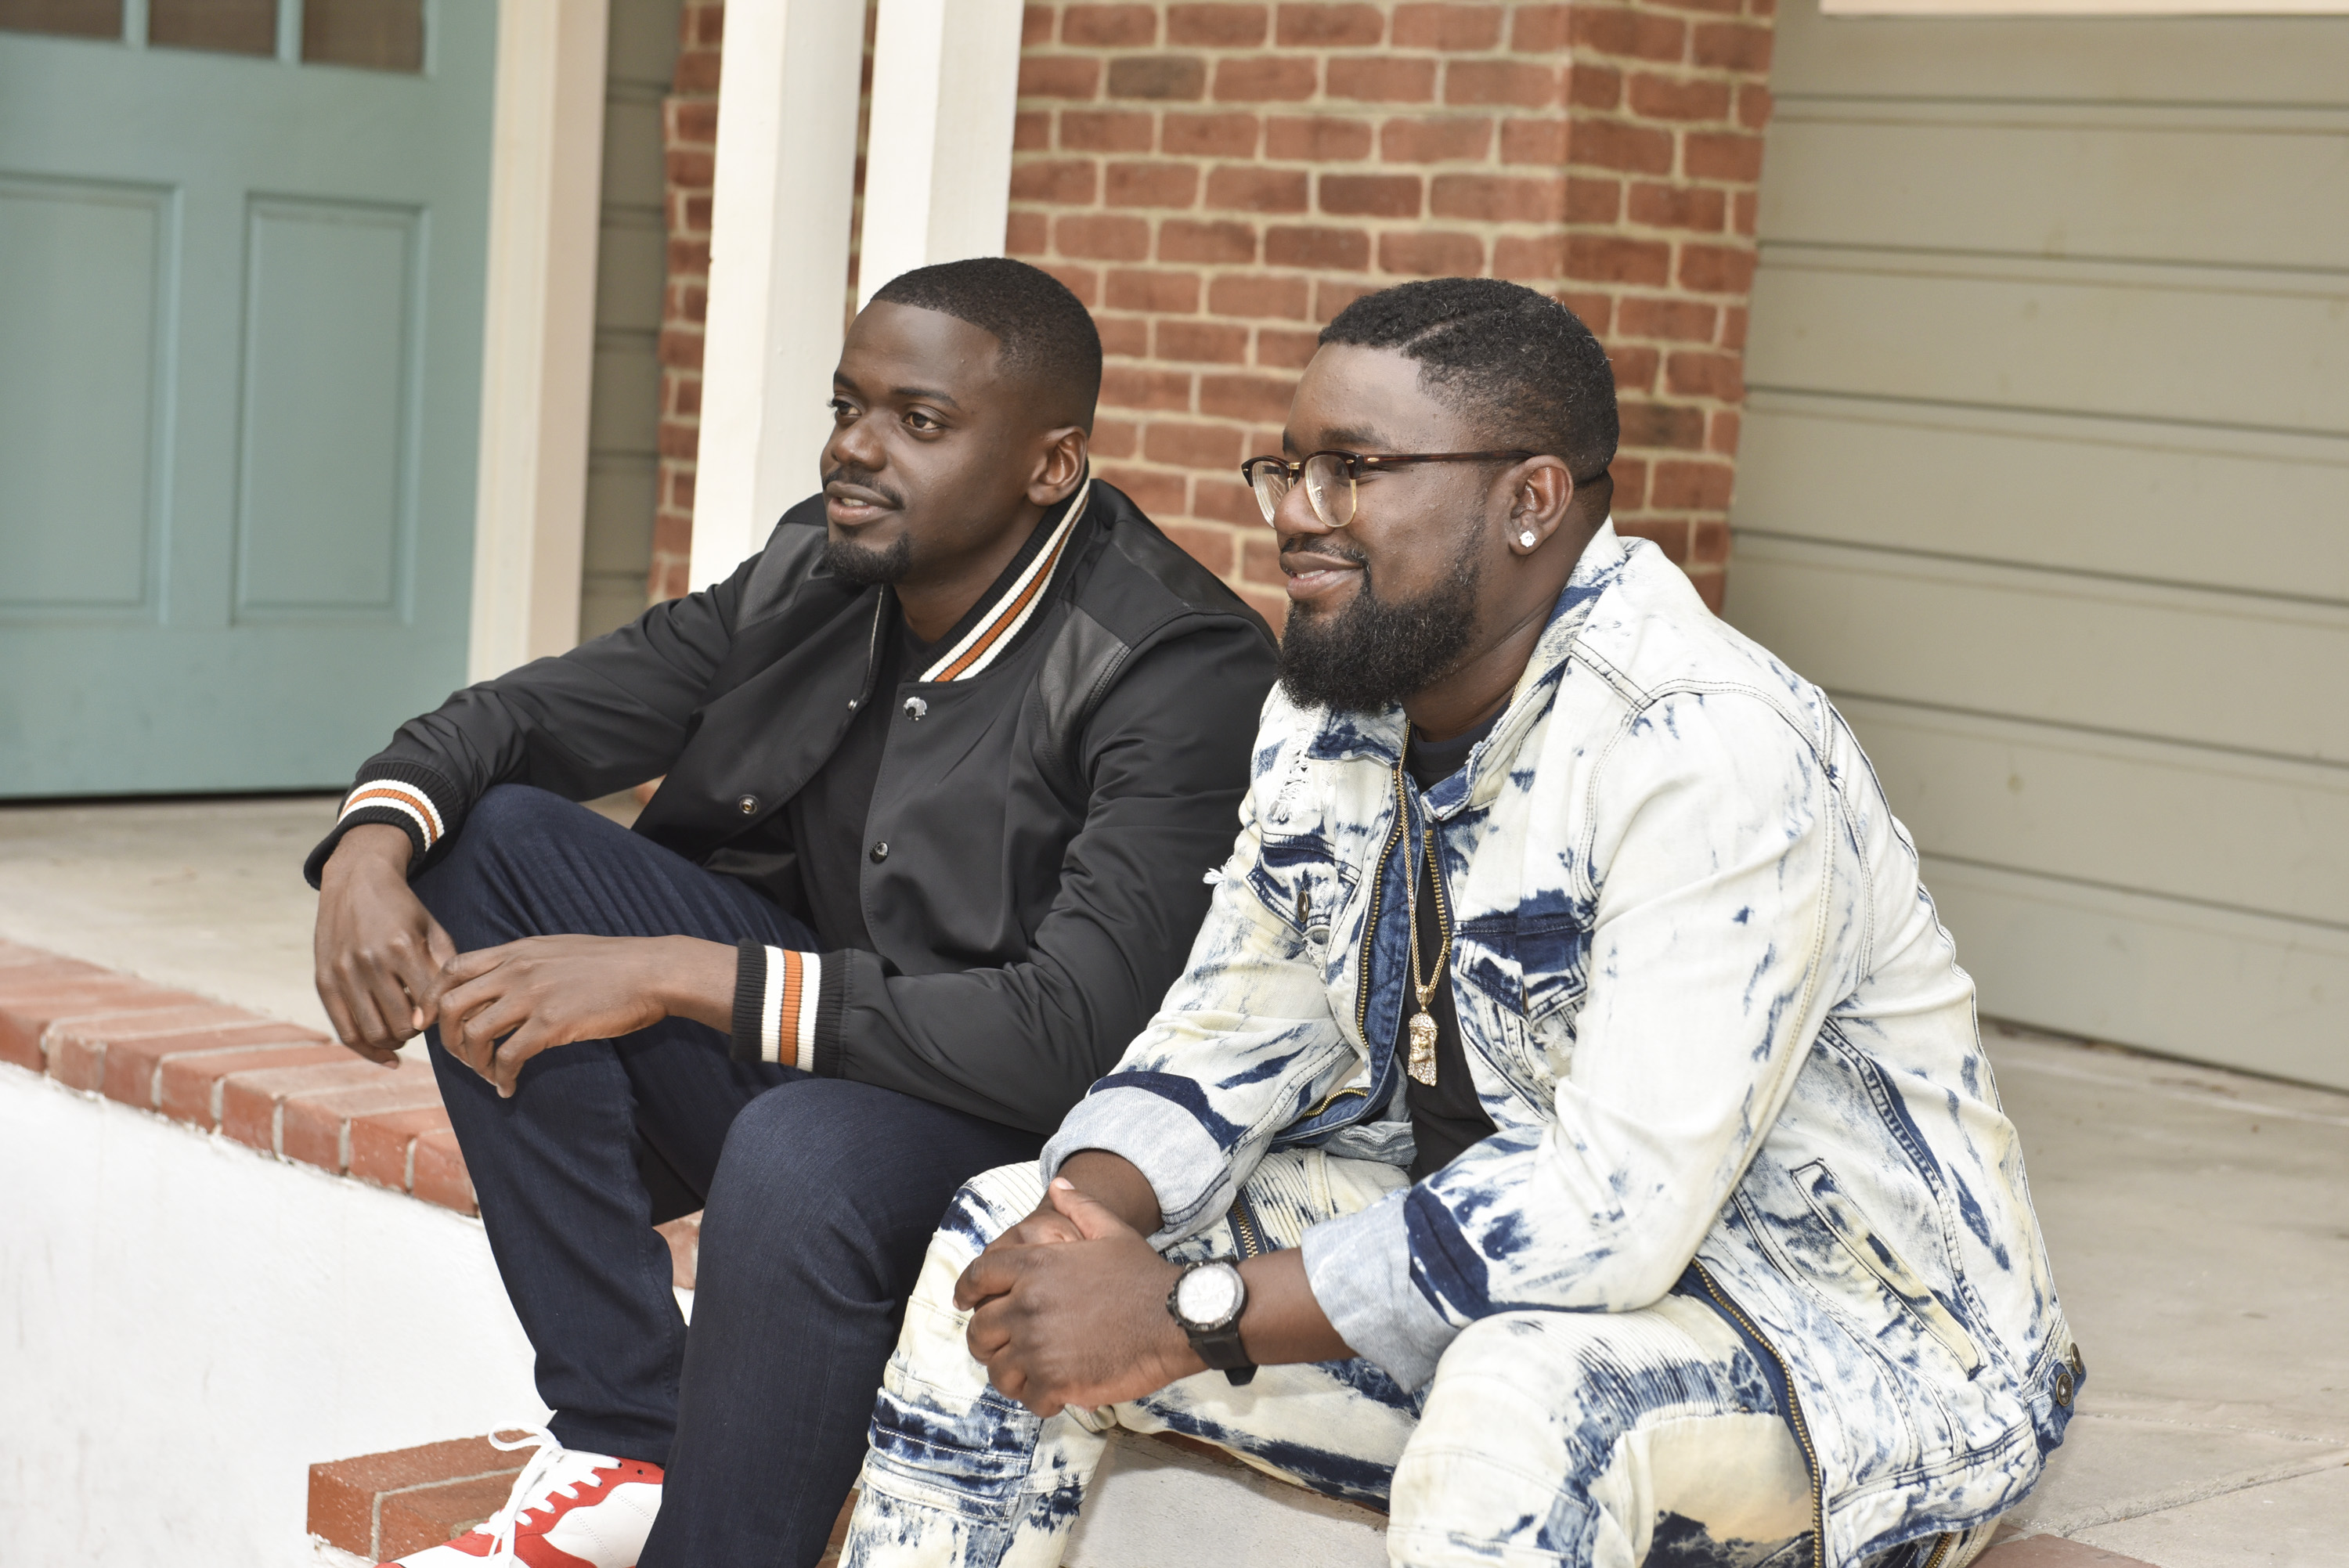 Get Out's Filmmakers and Cast Celebrate the Home Entertainment Release